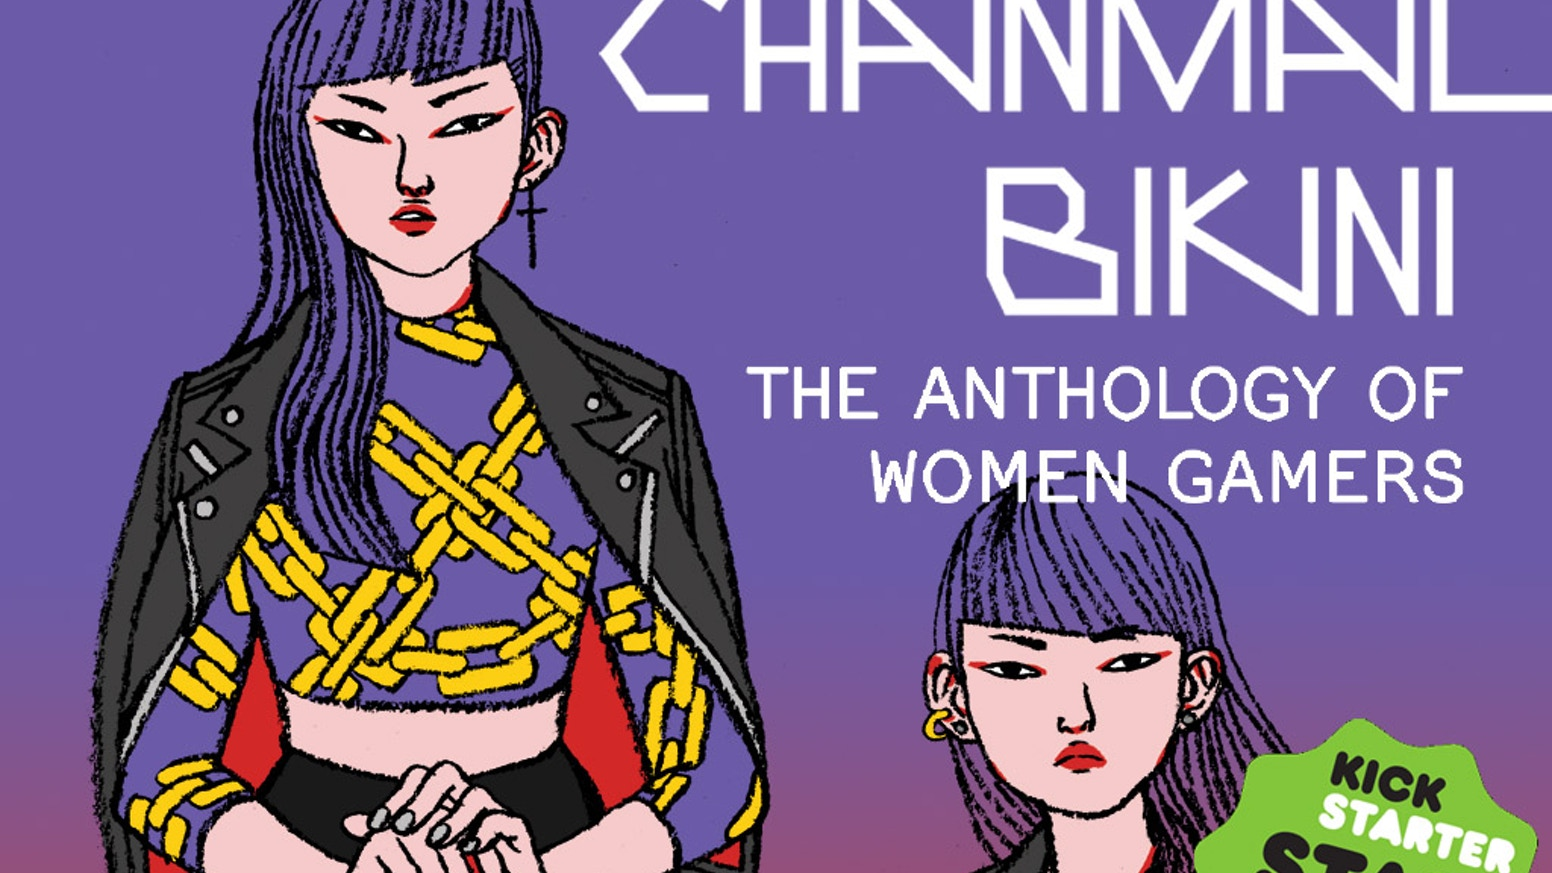 CHAINMAIL BIKINI is a comics anthology celebrating female gamers! Video games, RPGs, LARPing, and more.